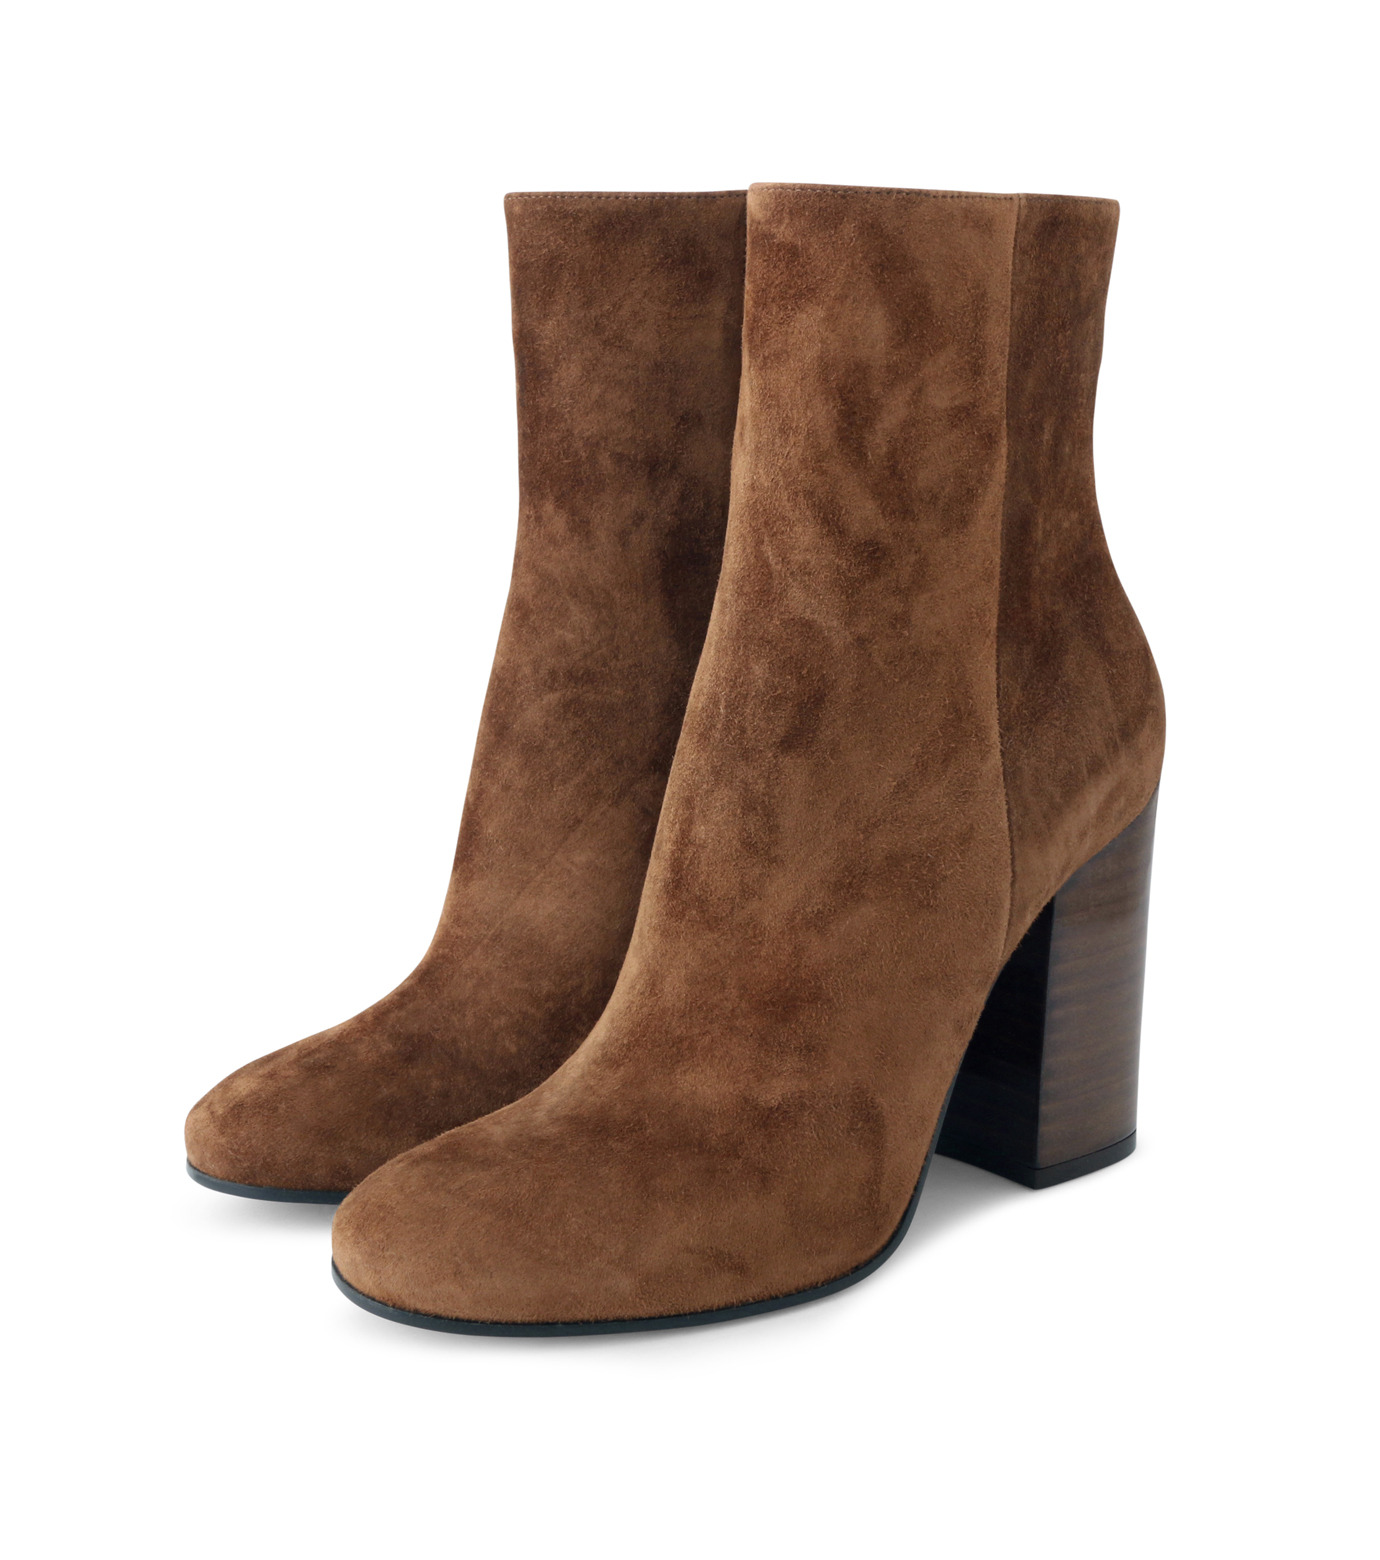 Gianvito Rossi(ジャンヴィト ロッシ)のSuede Short Boots Stucked Heel-CAMEL(ブーツ/boots)-G70546-53 拡大詳細画像3